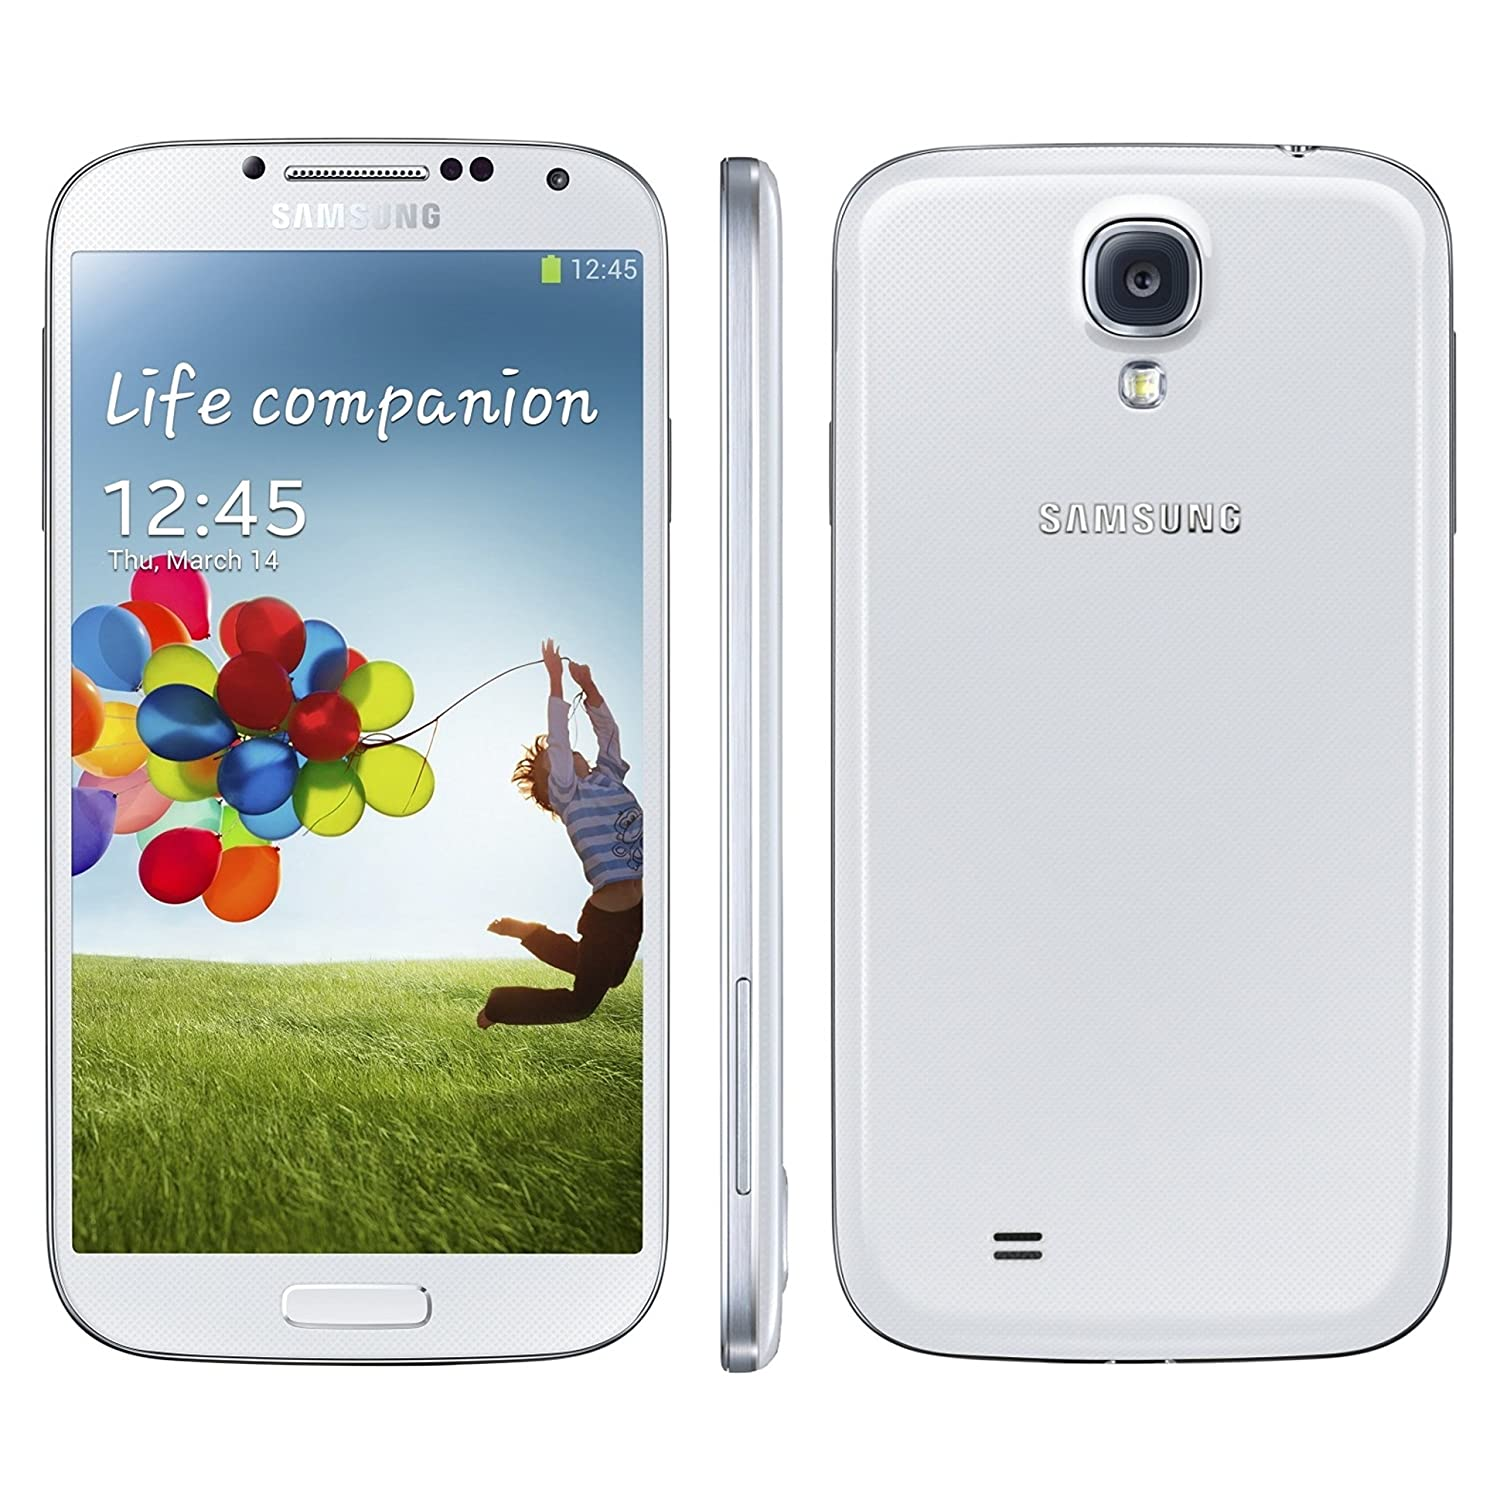 Samsung galaxy s4 mini coming soon at telstra in australia - Amazon Com Samsung Galaxy S4 Gt I9500 Factory Unlocked Cellphone 16gb White Cell Phones Accessories